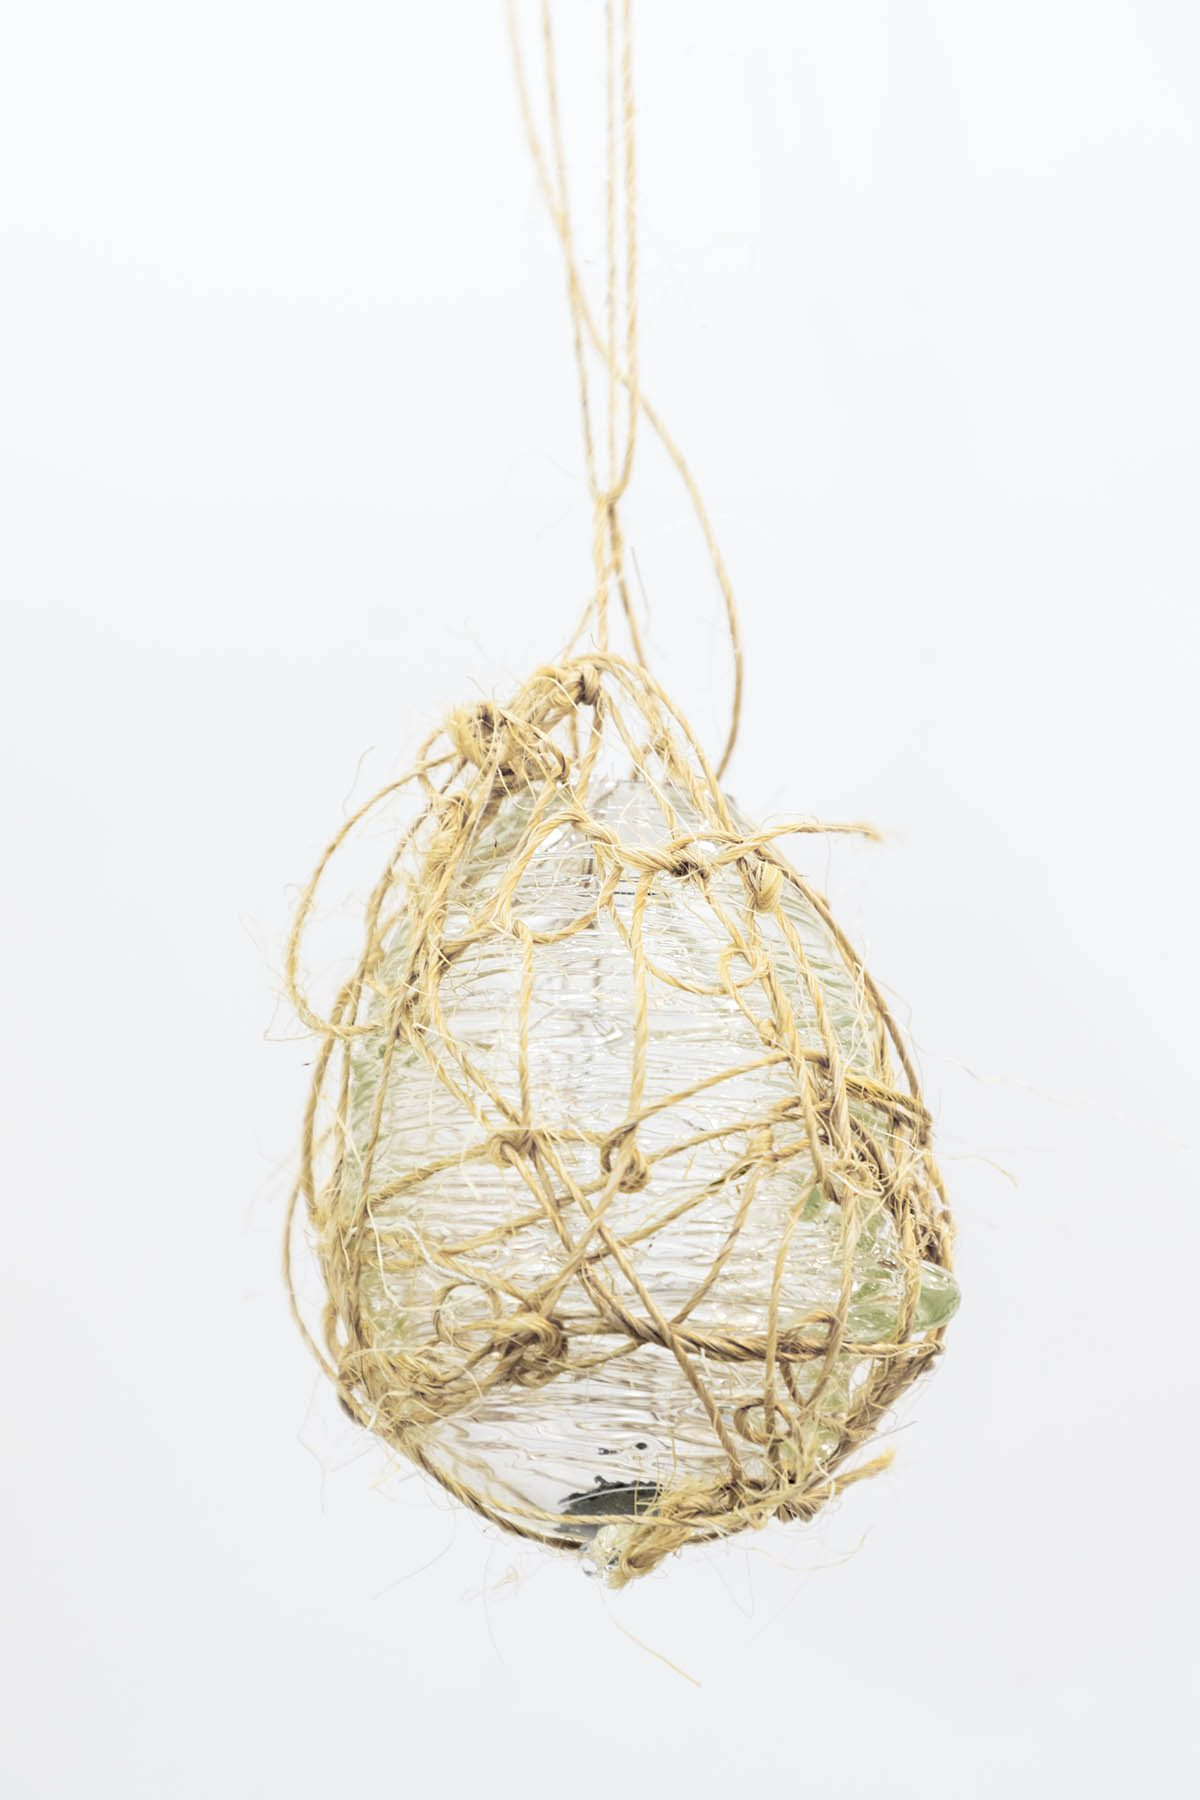 Image representing Xuan Guan's performance, object in glass, fabric, wire, and wood.